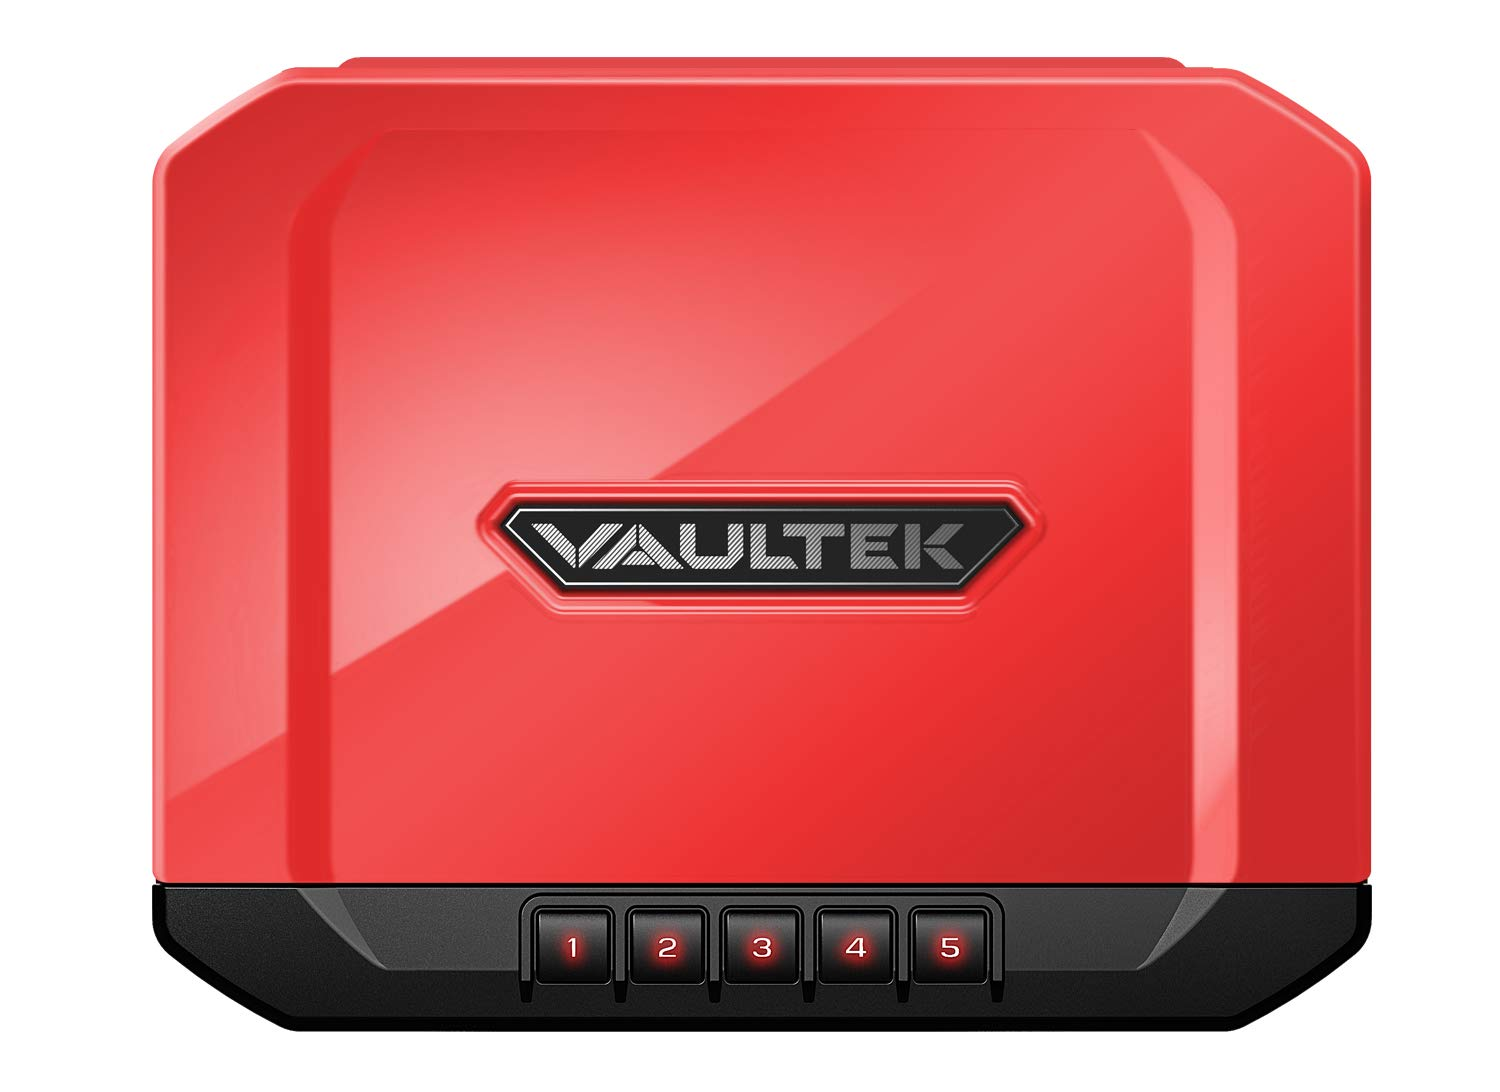 Vaultek Essential Series Quick Access Portable Safe Auto Open Lid Quick-Release Security Cable Rechargeable Lithium-ion Battery (VE10 (Mars Red Sub-Compact Safe))